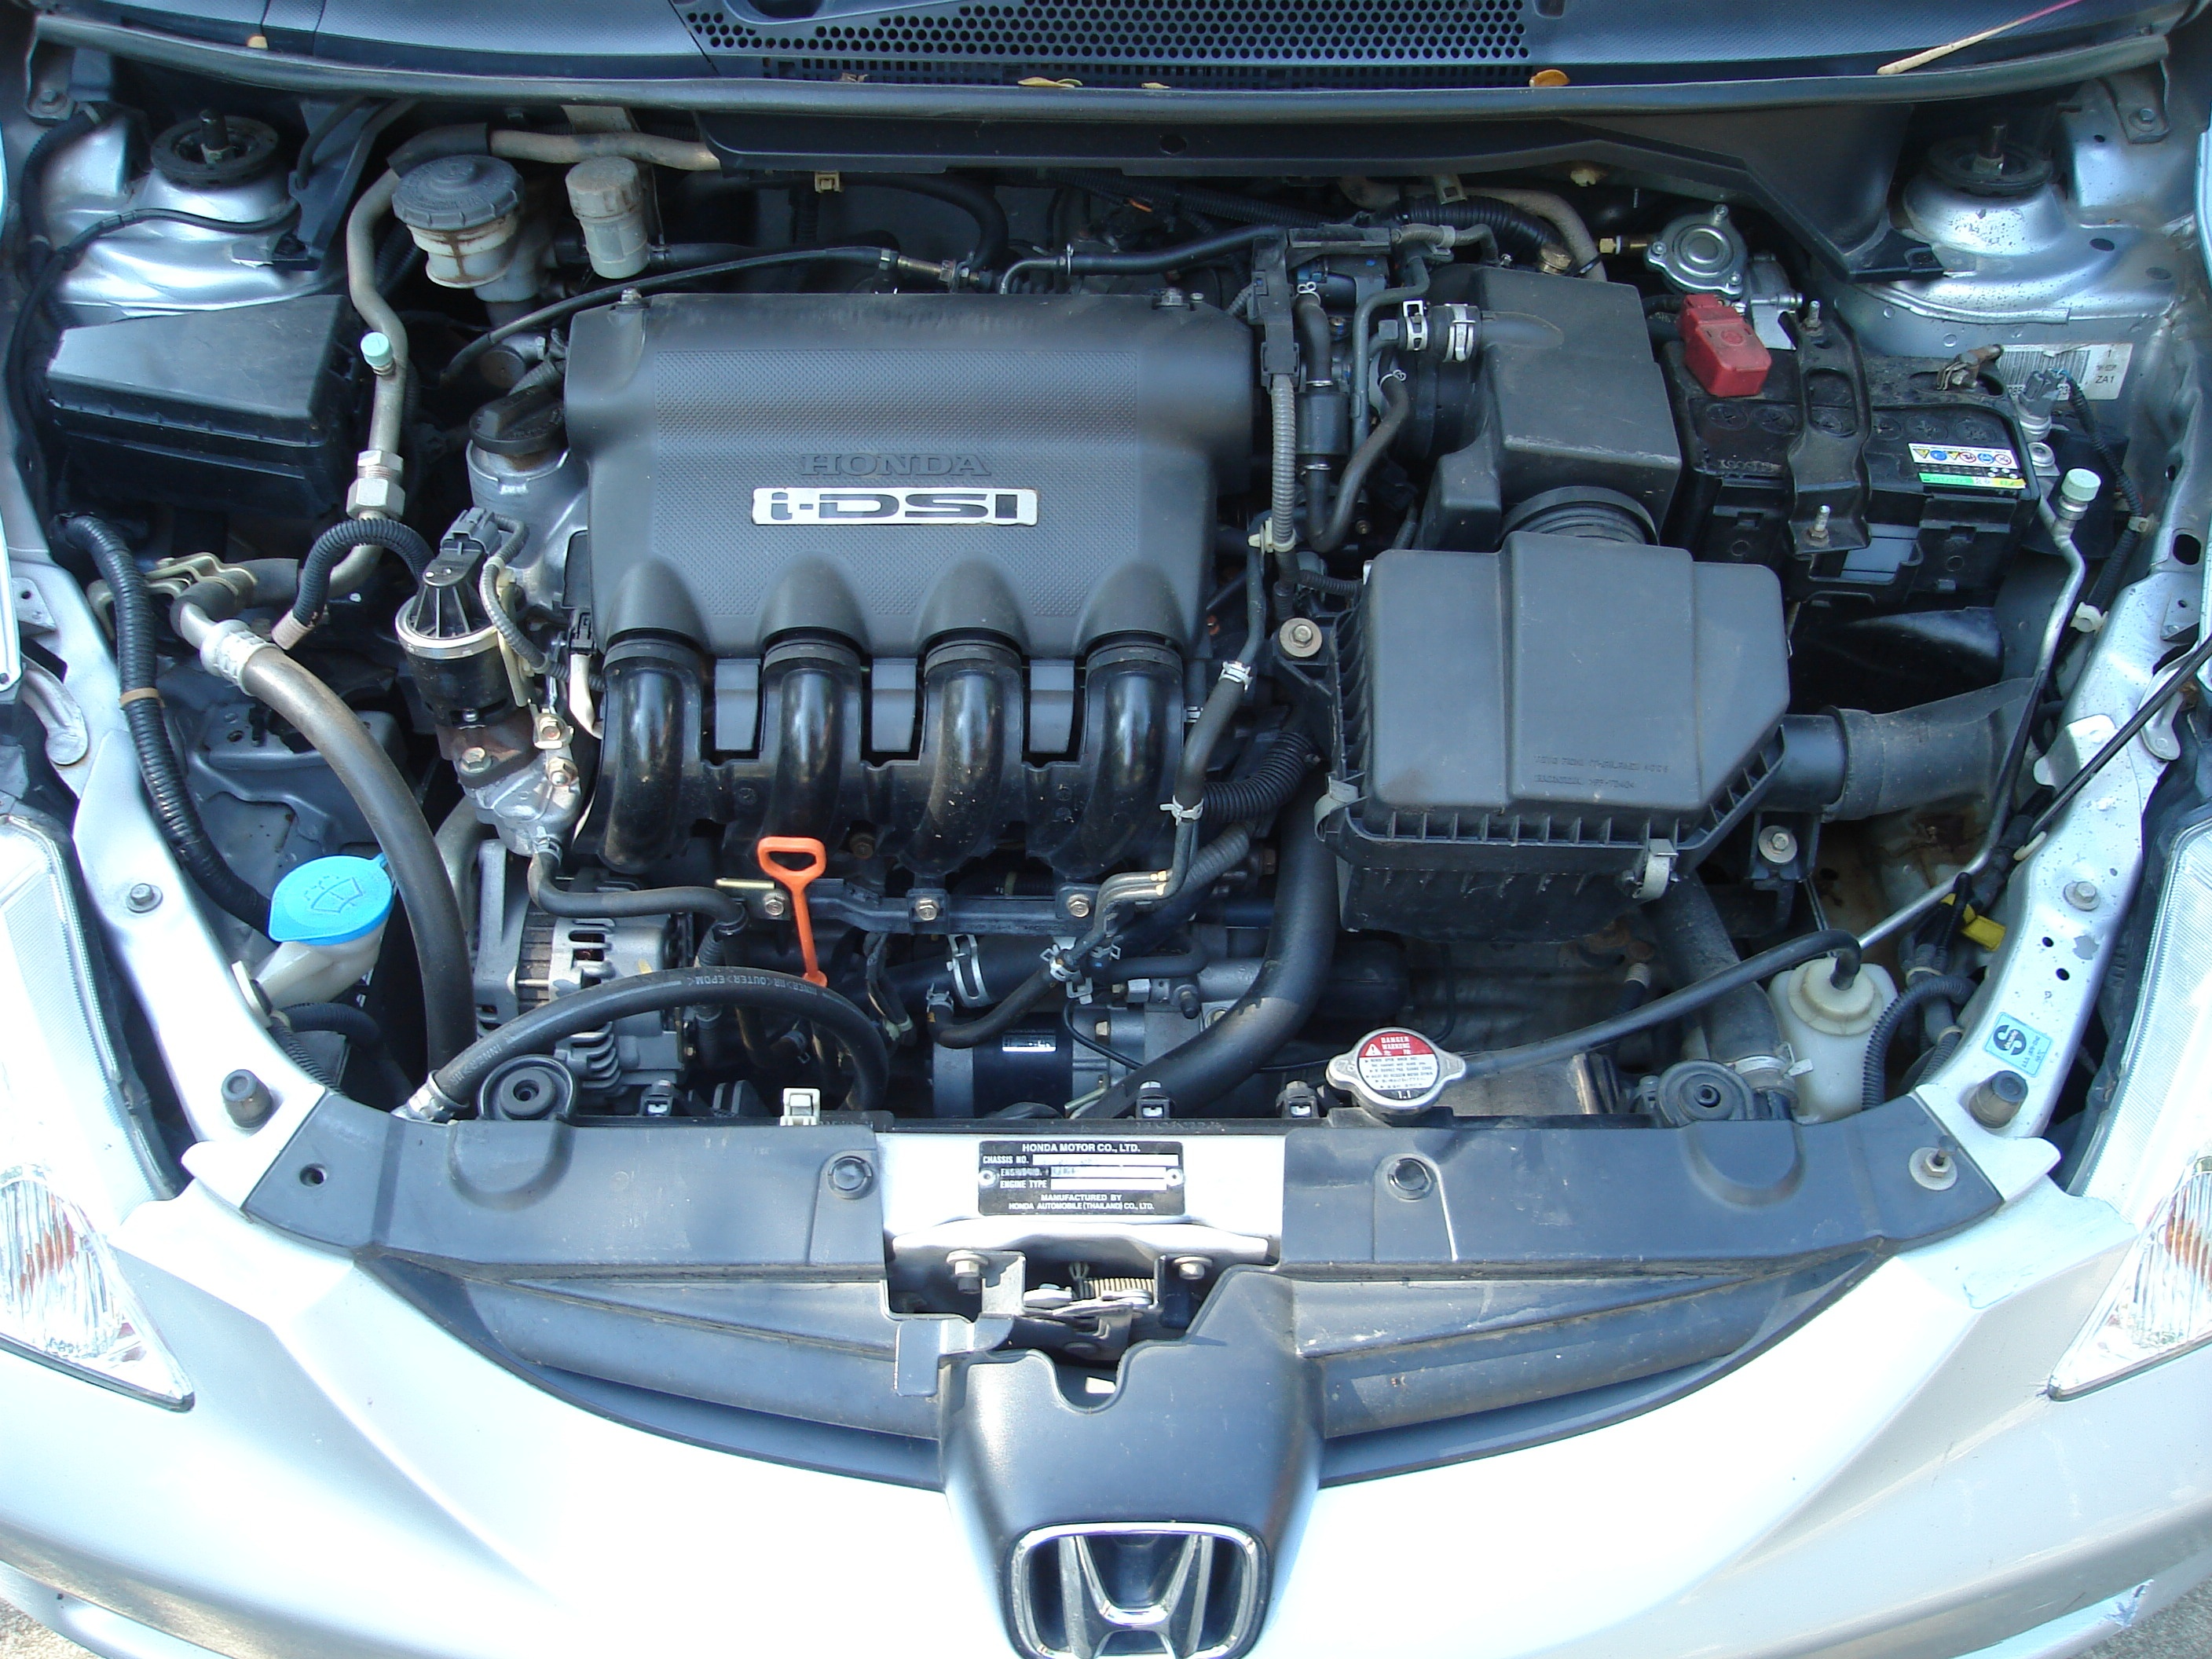 ... Honda City comes with a 1.5L i-DTEC engine, offering a power of 100 ps  and a mileage of 25.6 km/l, along with a 6 speed Manual Transmission.